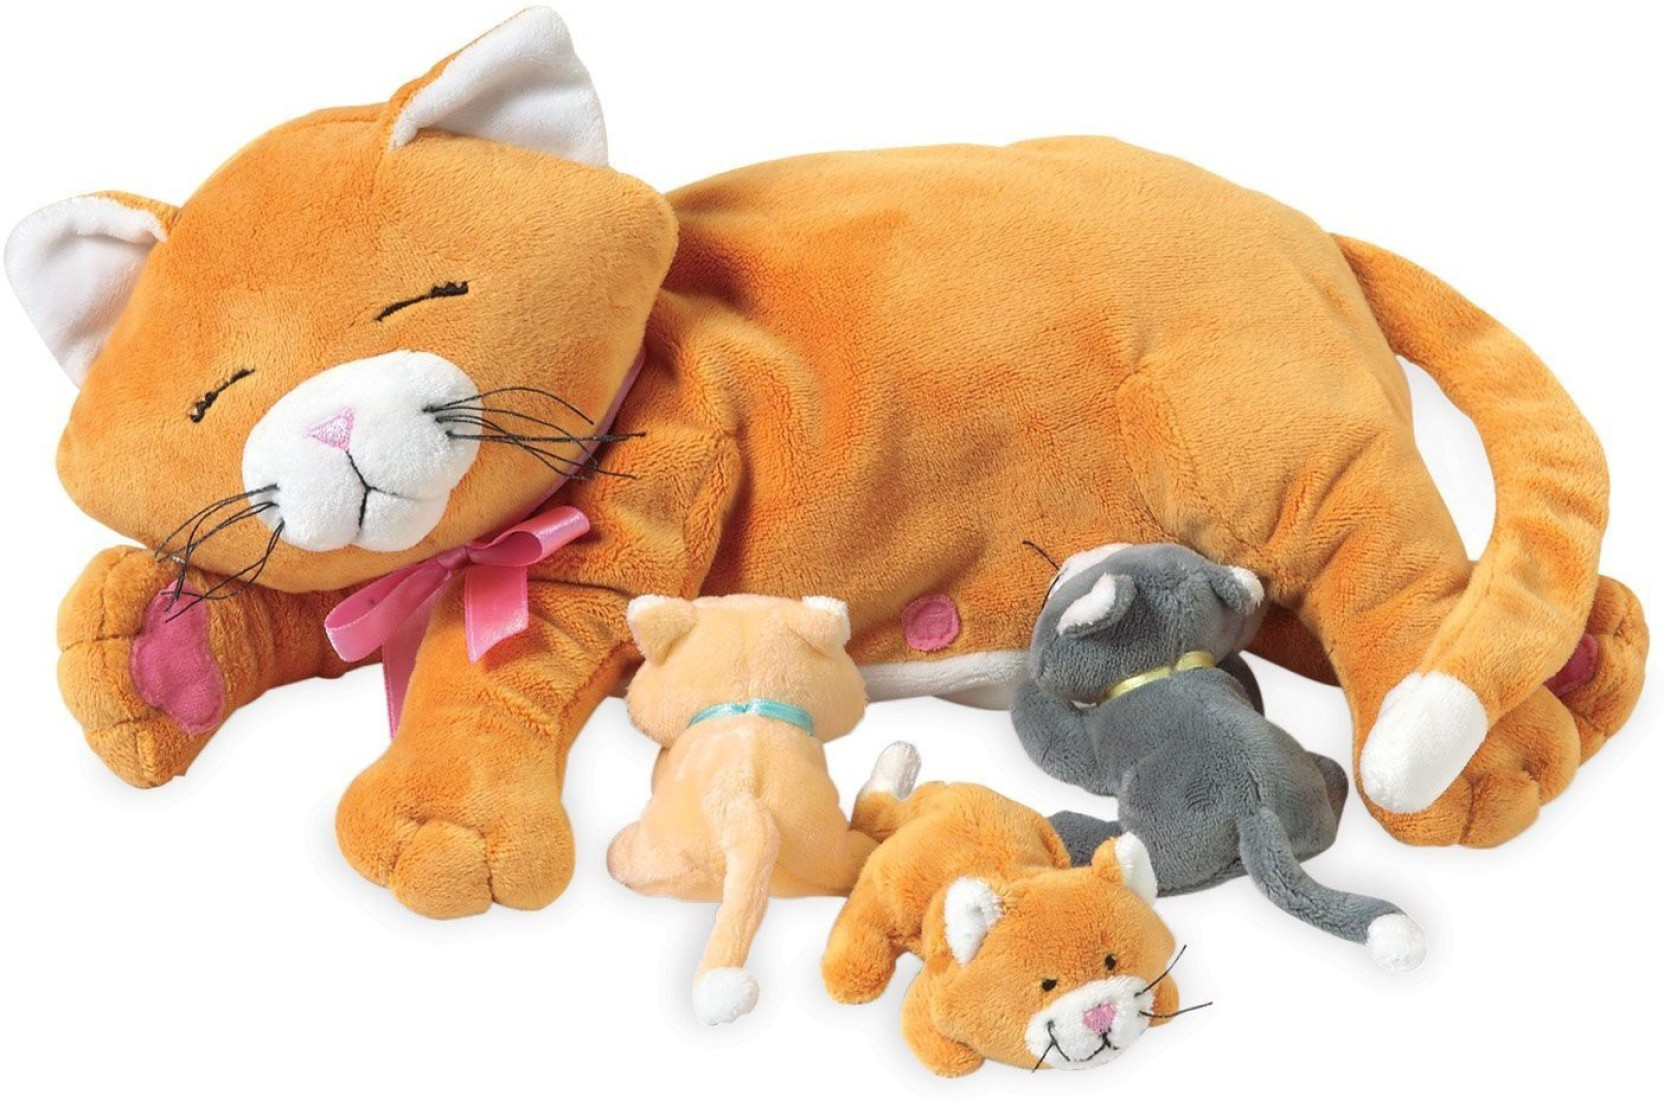 b576c9f7ad92 Plush Toys Plush Momma Cat With Meowing Kittens - 5.9 inch - Plush ...